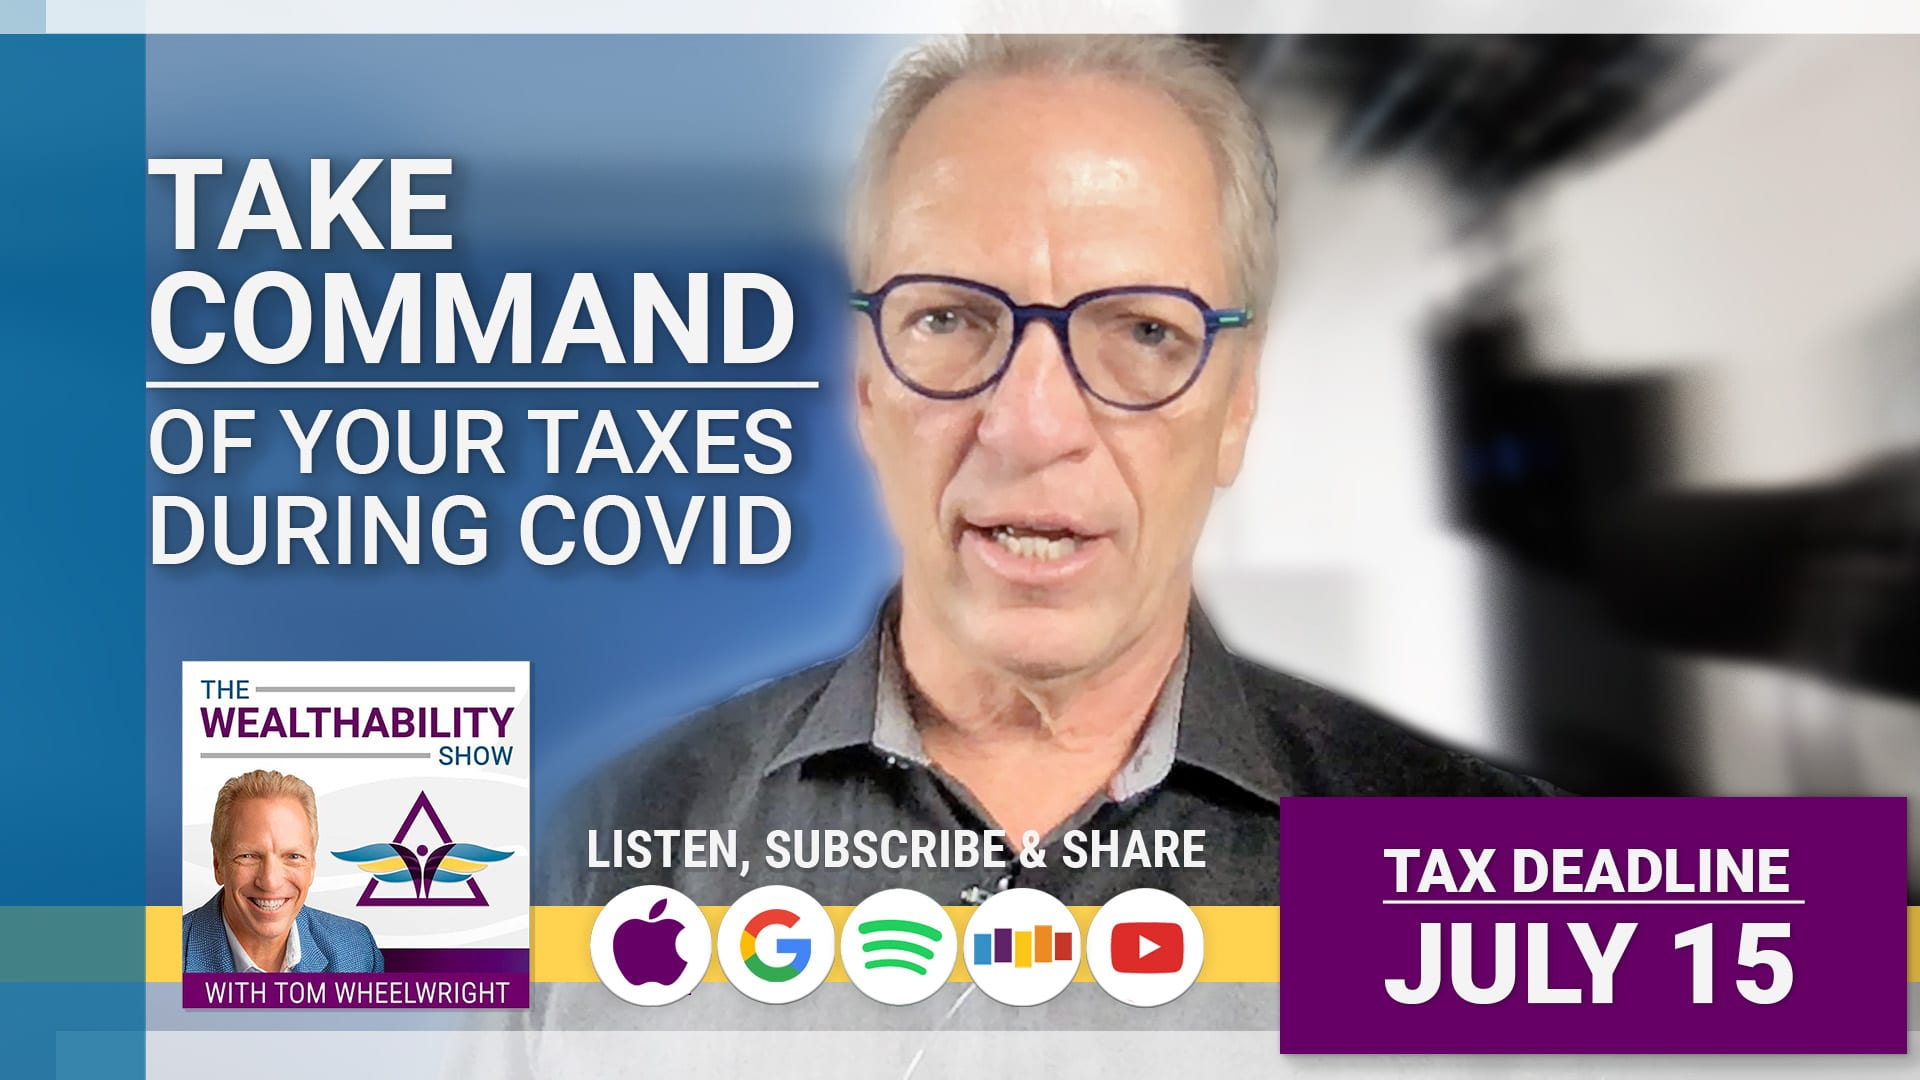 Take Command of Your Taxes During COVID